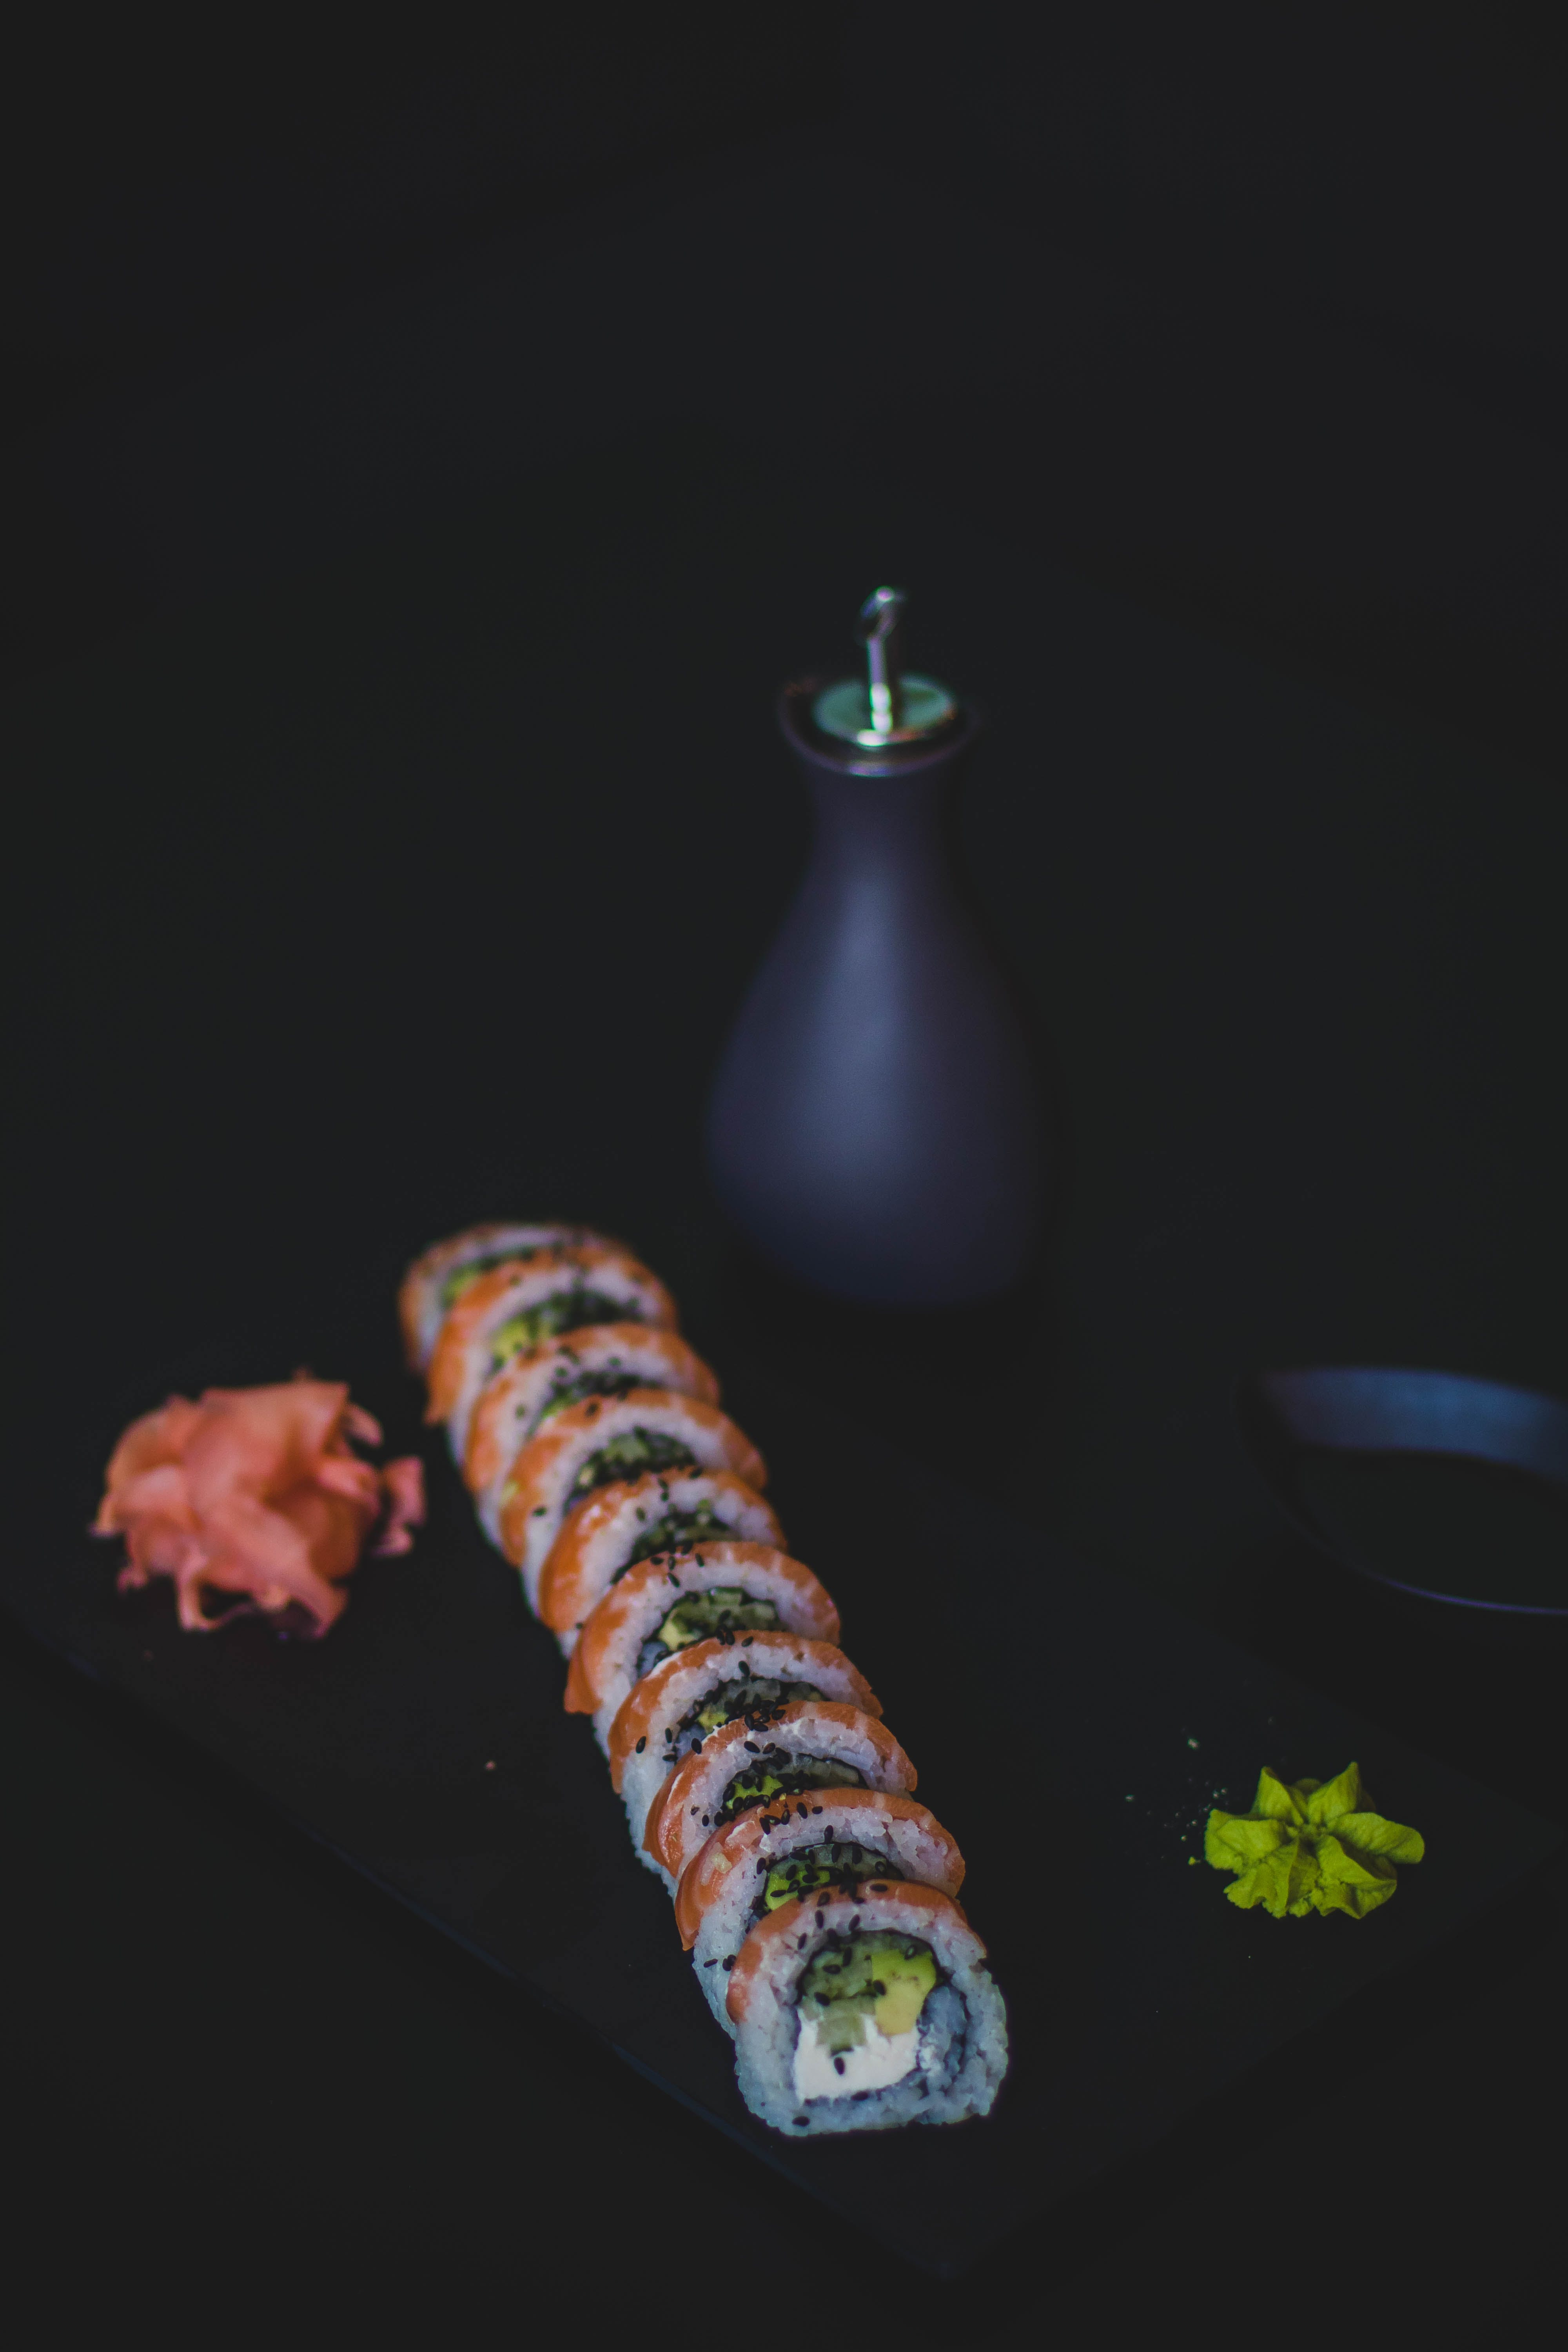 Sushi and Oil Bottle on Top of Table